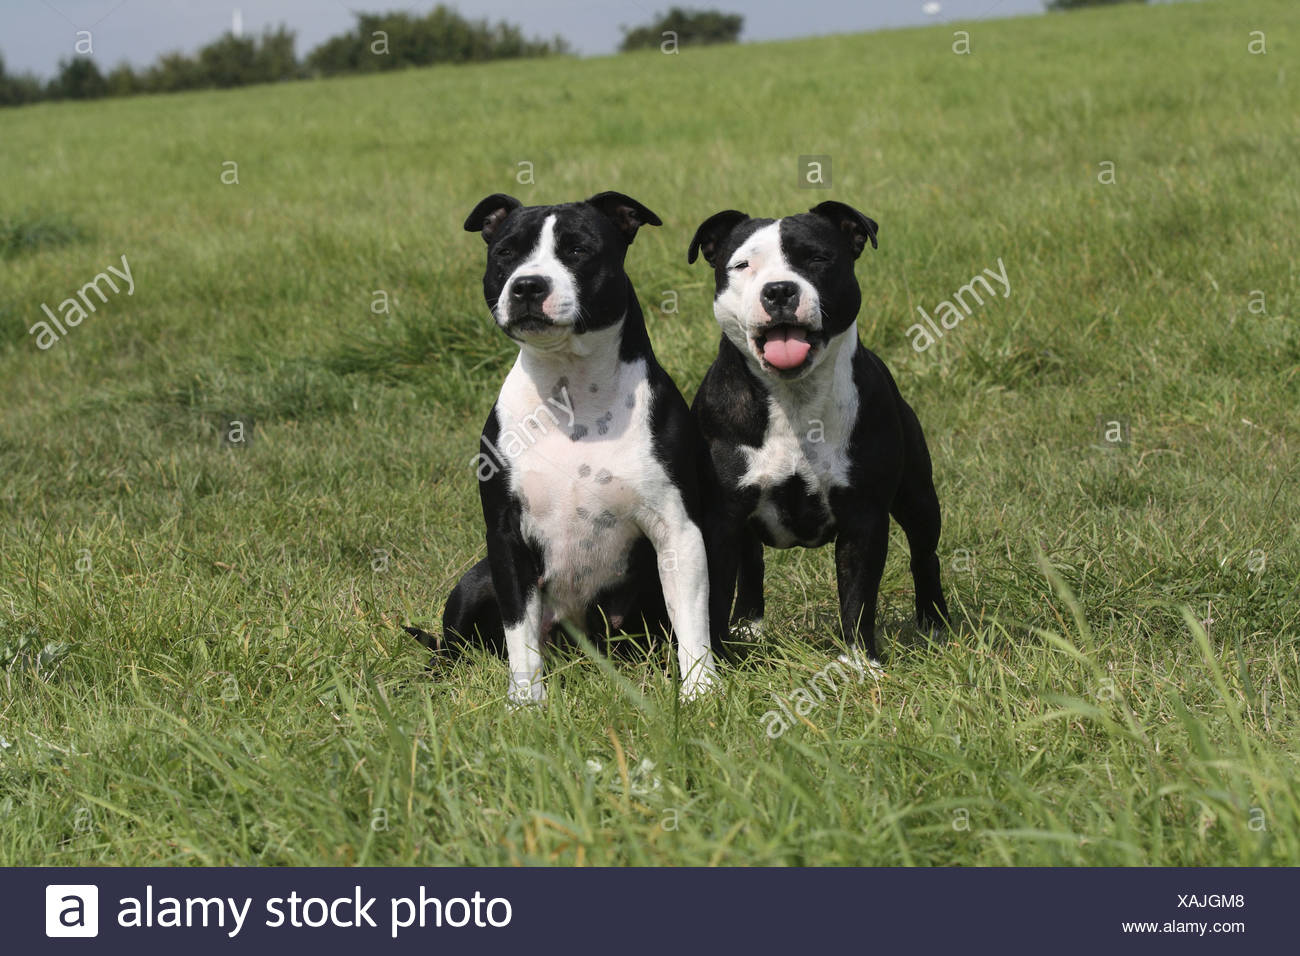 Staffordshire Bull Terrier (Canis lupus f. familiaris), two femals next to each other in a meadow - Stock Image